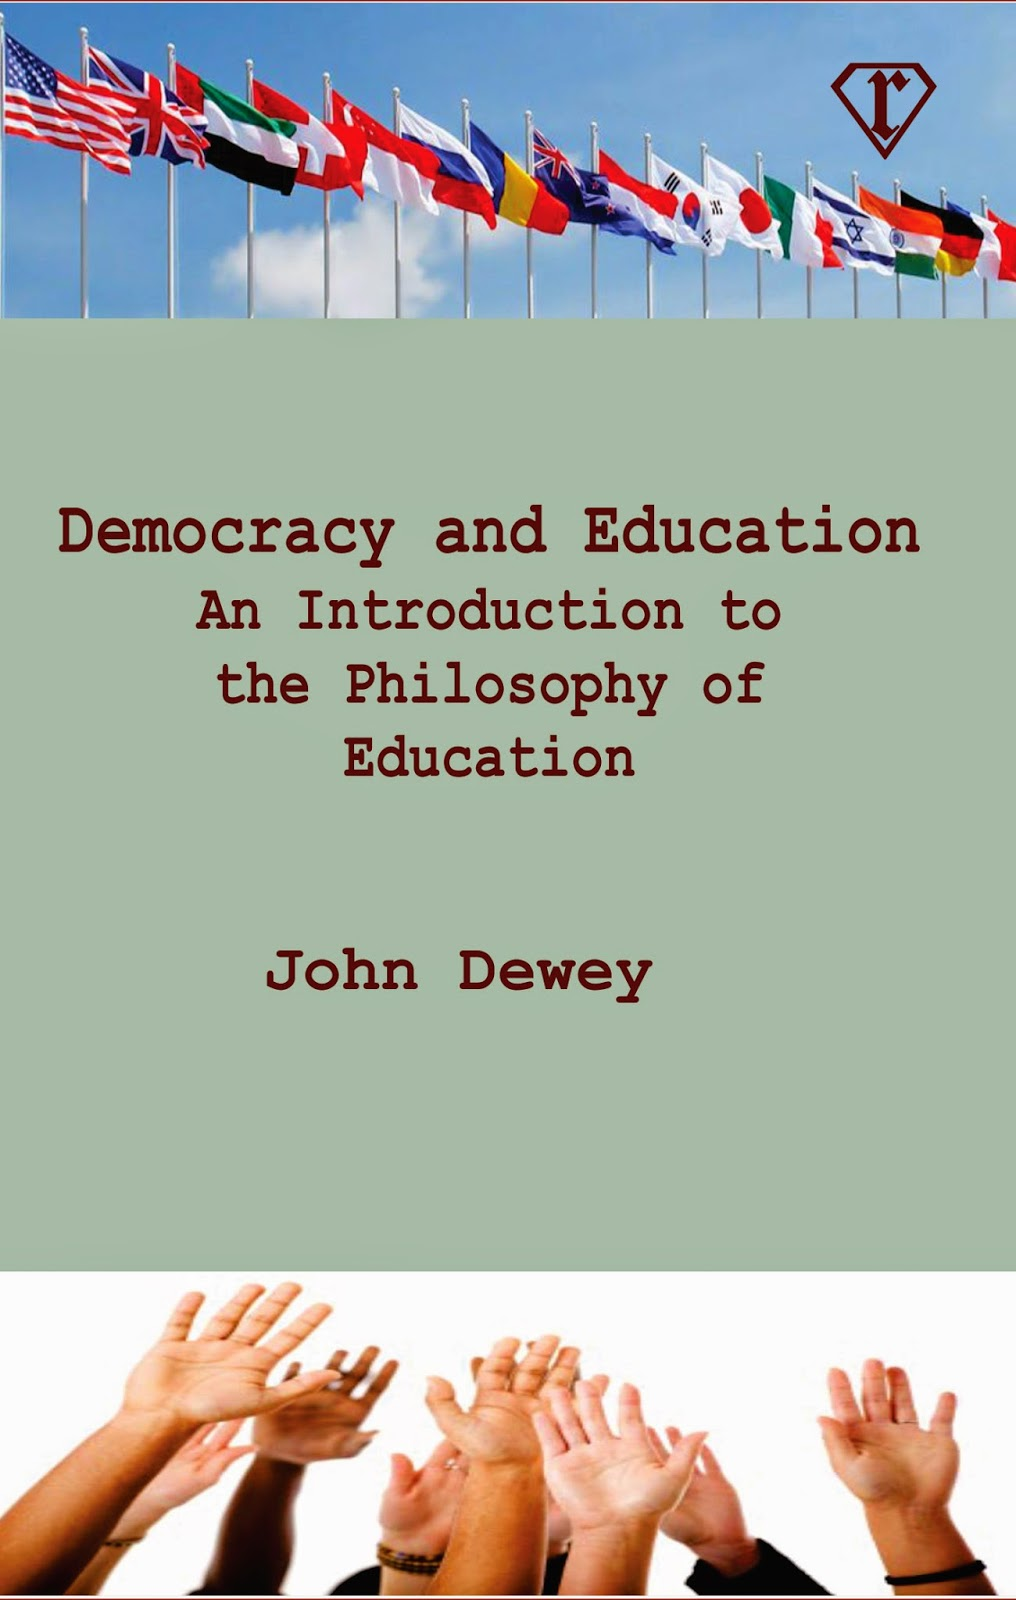 introduction to the philosophy of education Democracy and education : an introduction to the philosophy of education item preview democracy and education an introduction to the philosophy of education.